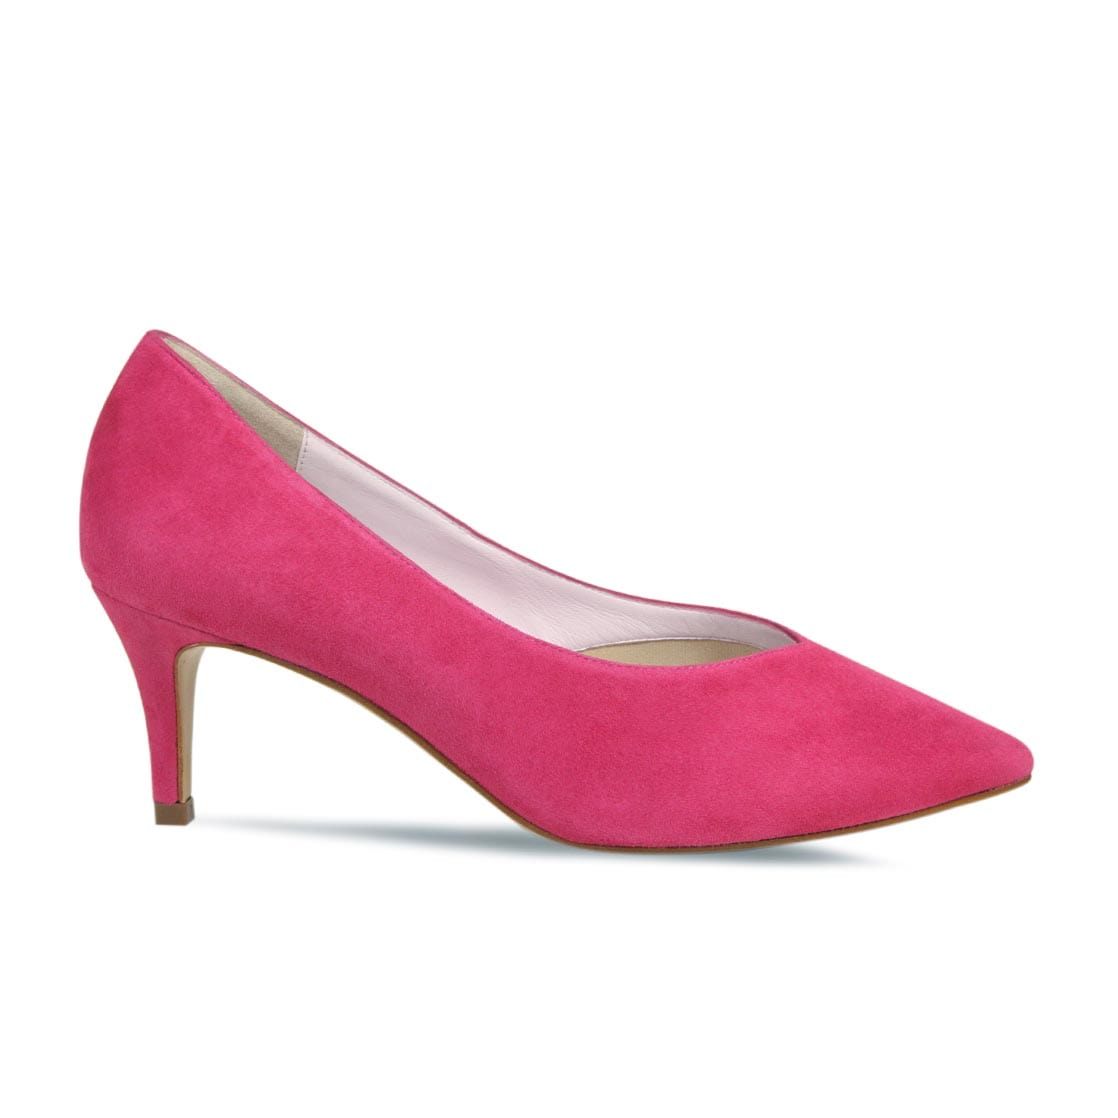 Hot Pink Suede Mid-Heel Pumps